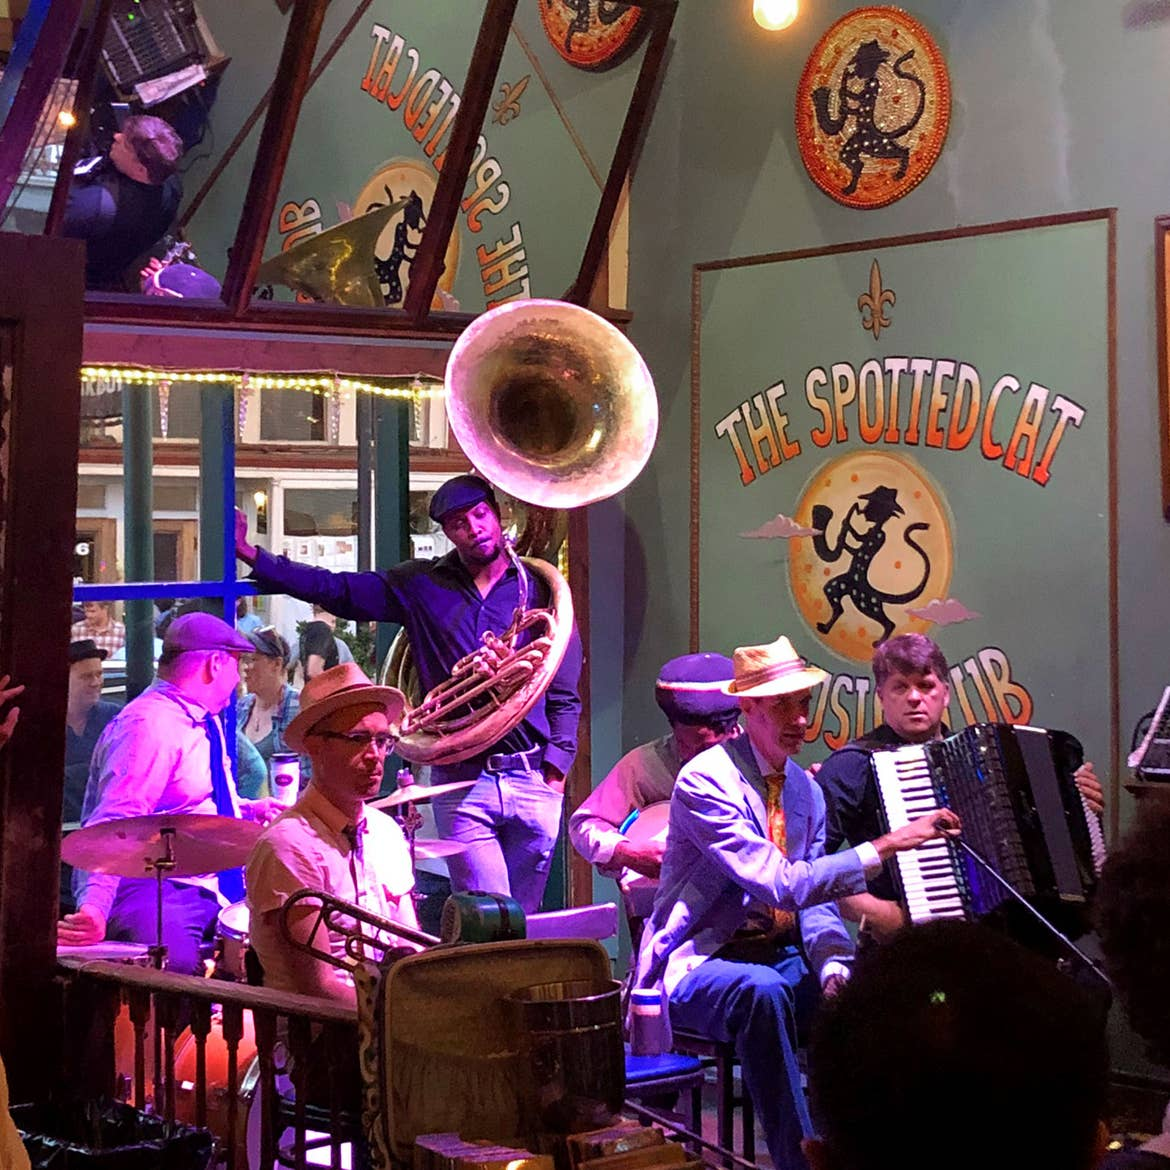 Jazz musicians perform at The Spotted Cat.